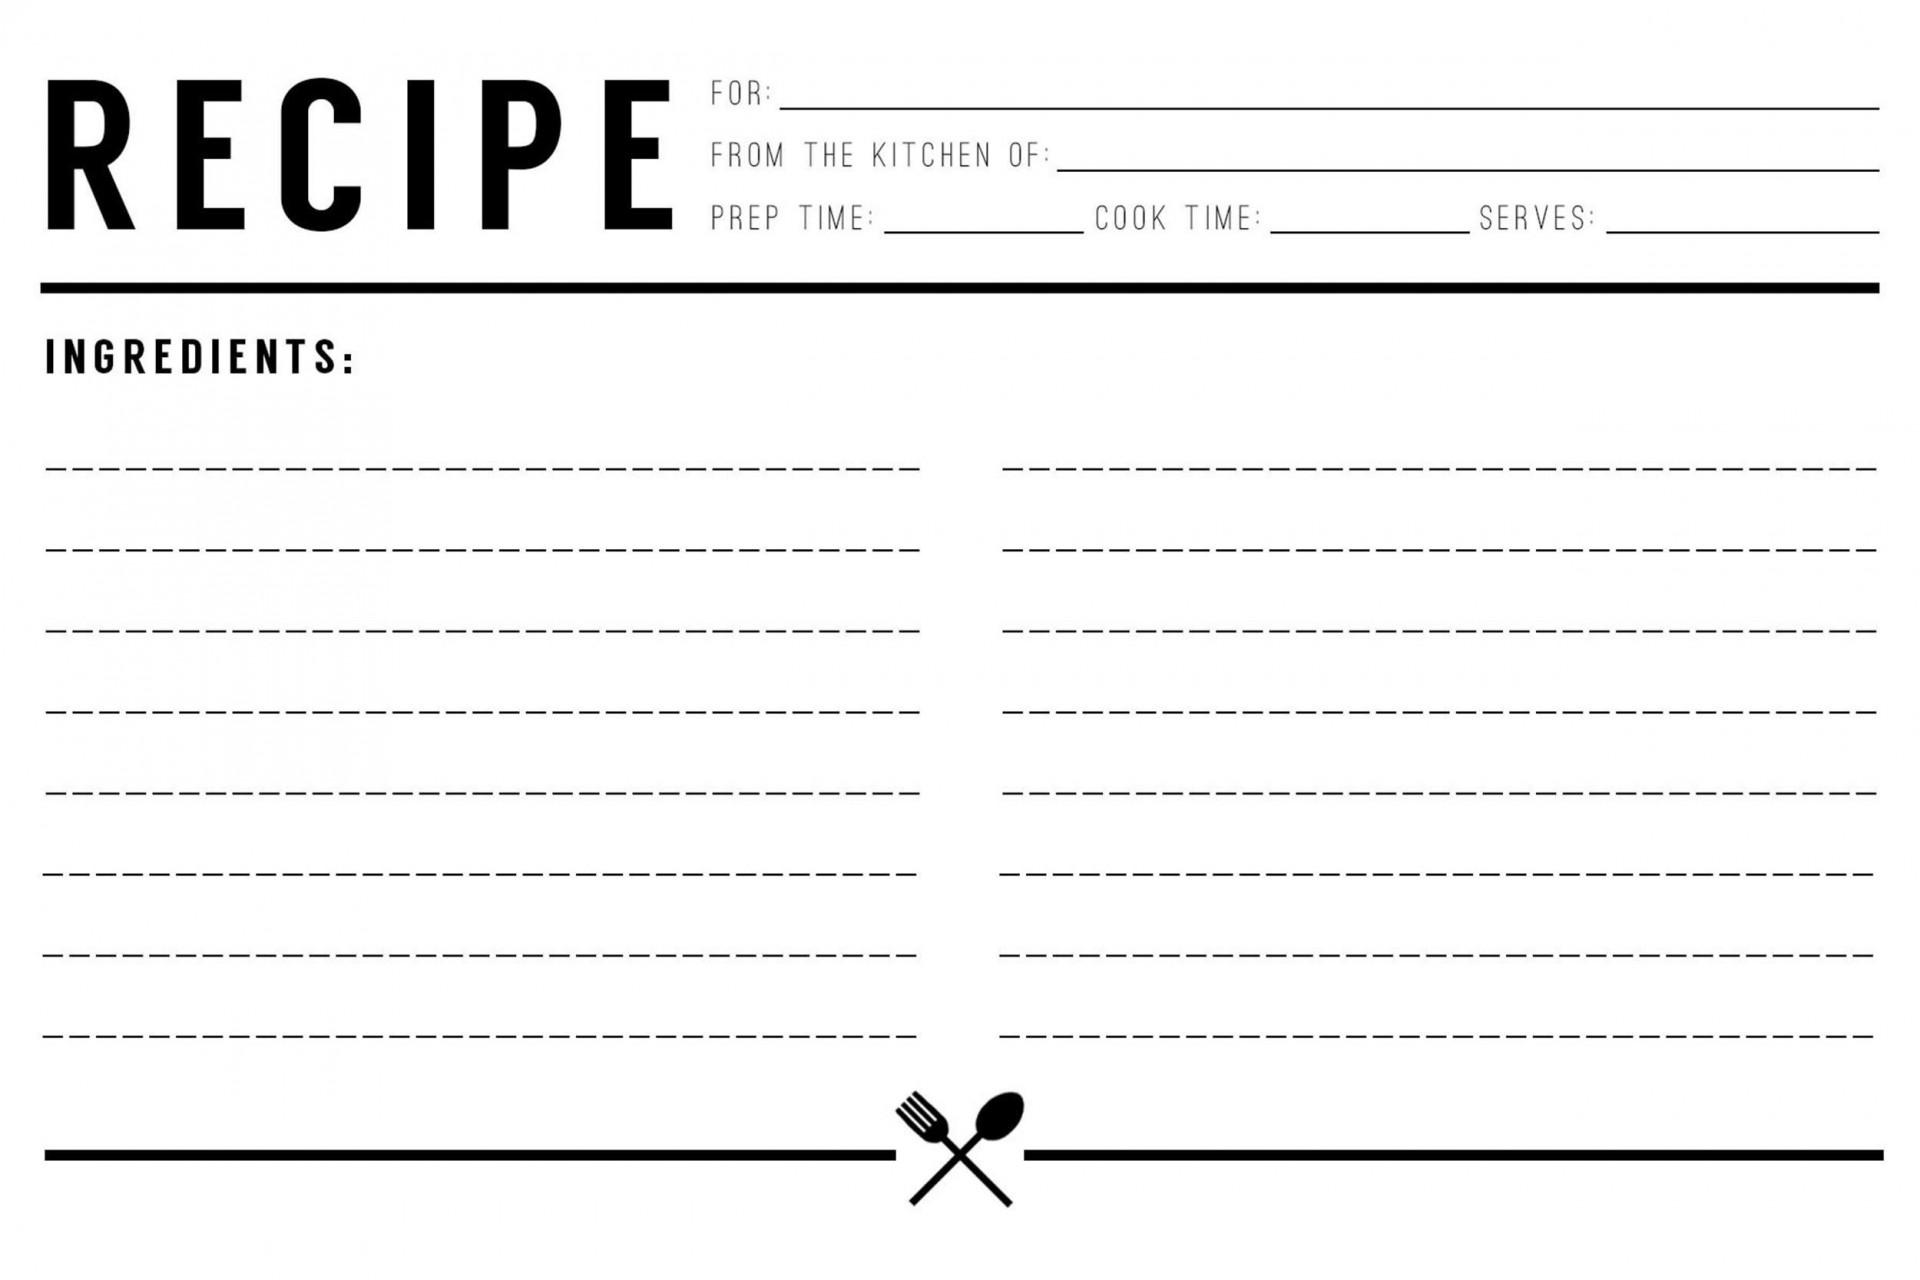 004 Archaicawful Recipe Card Template For Word Design  Printable Blank Fillable1920